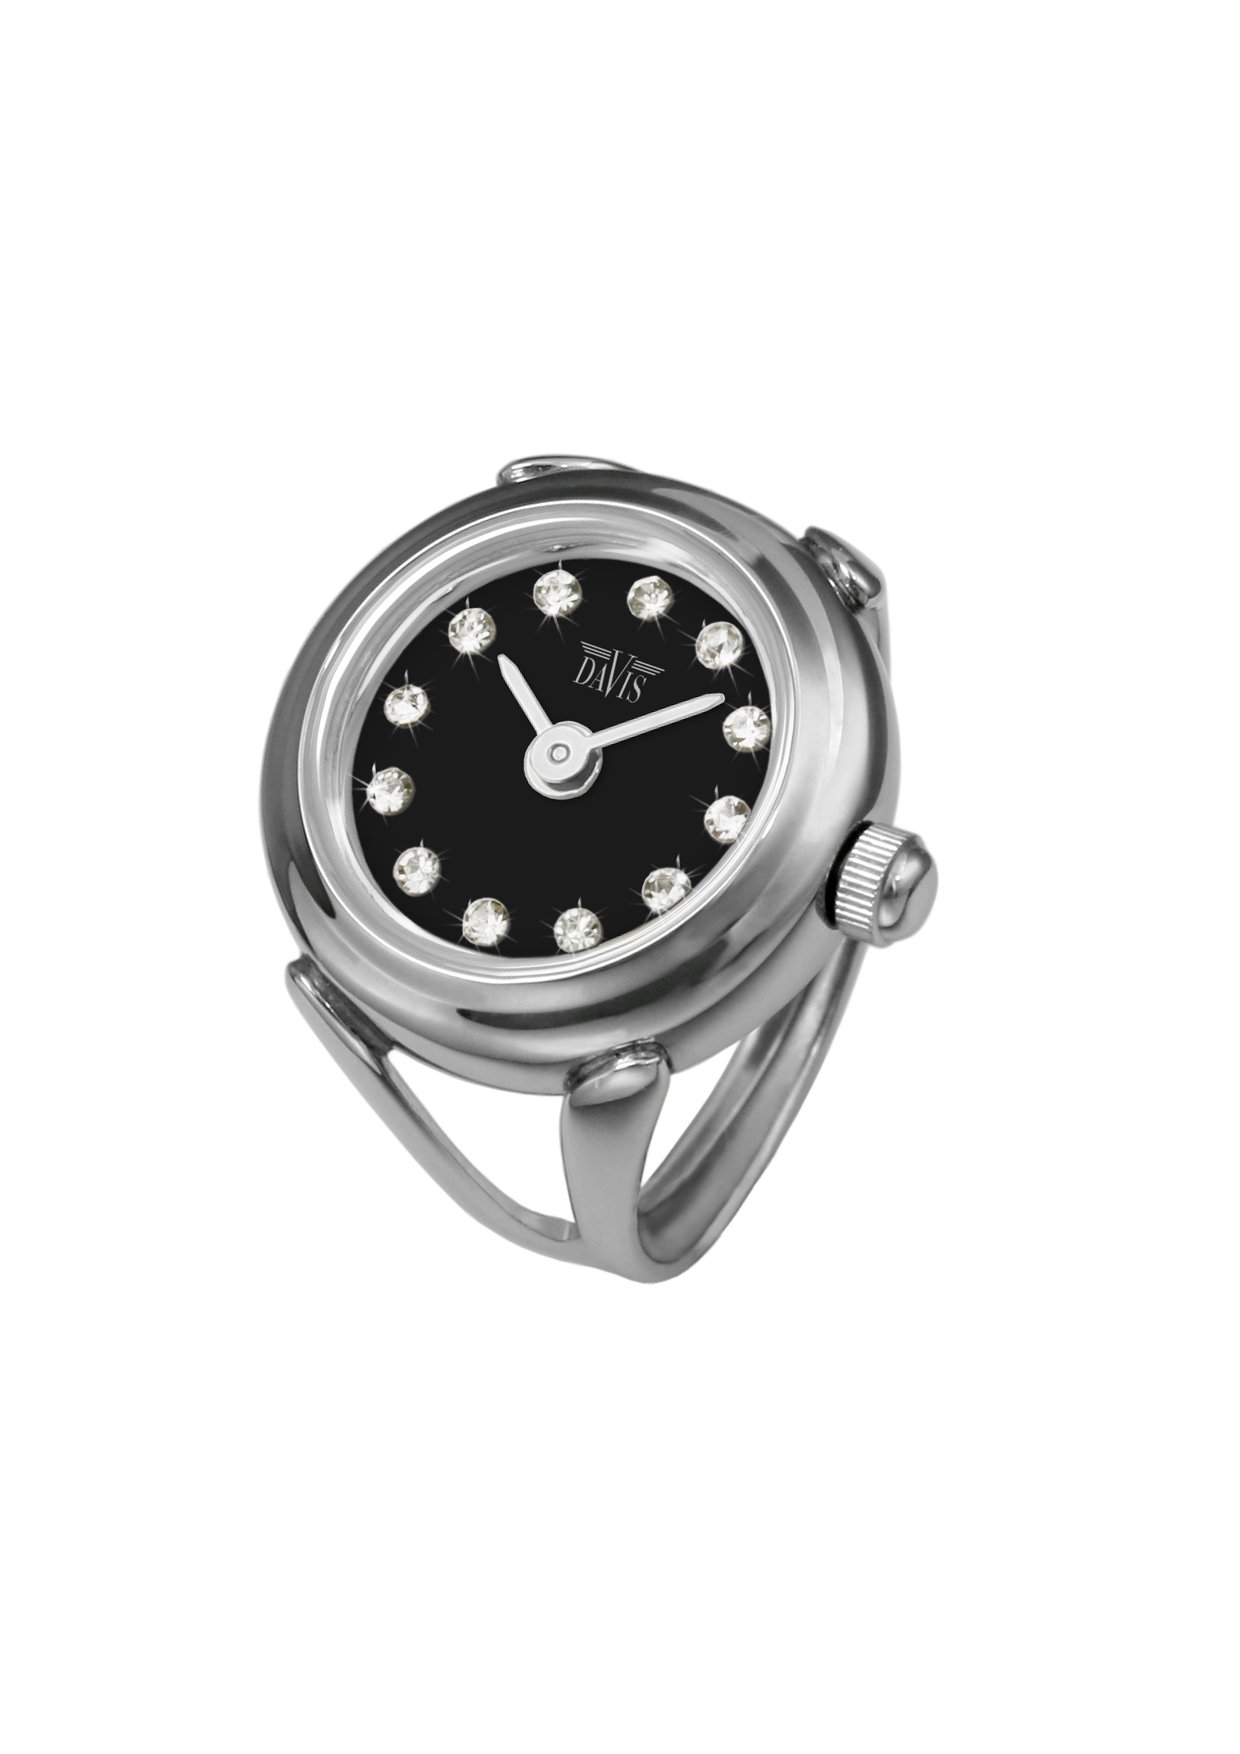 Davis - Womens Finger Ring Watch Swarovski Crystal Rhinestones Sapphire Glass Adjustable (Steel / Black Dial)